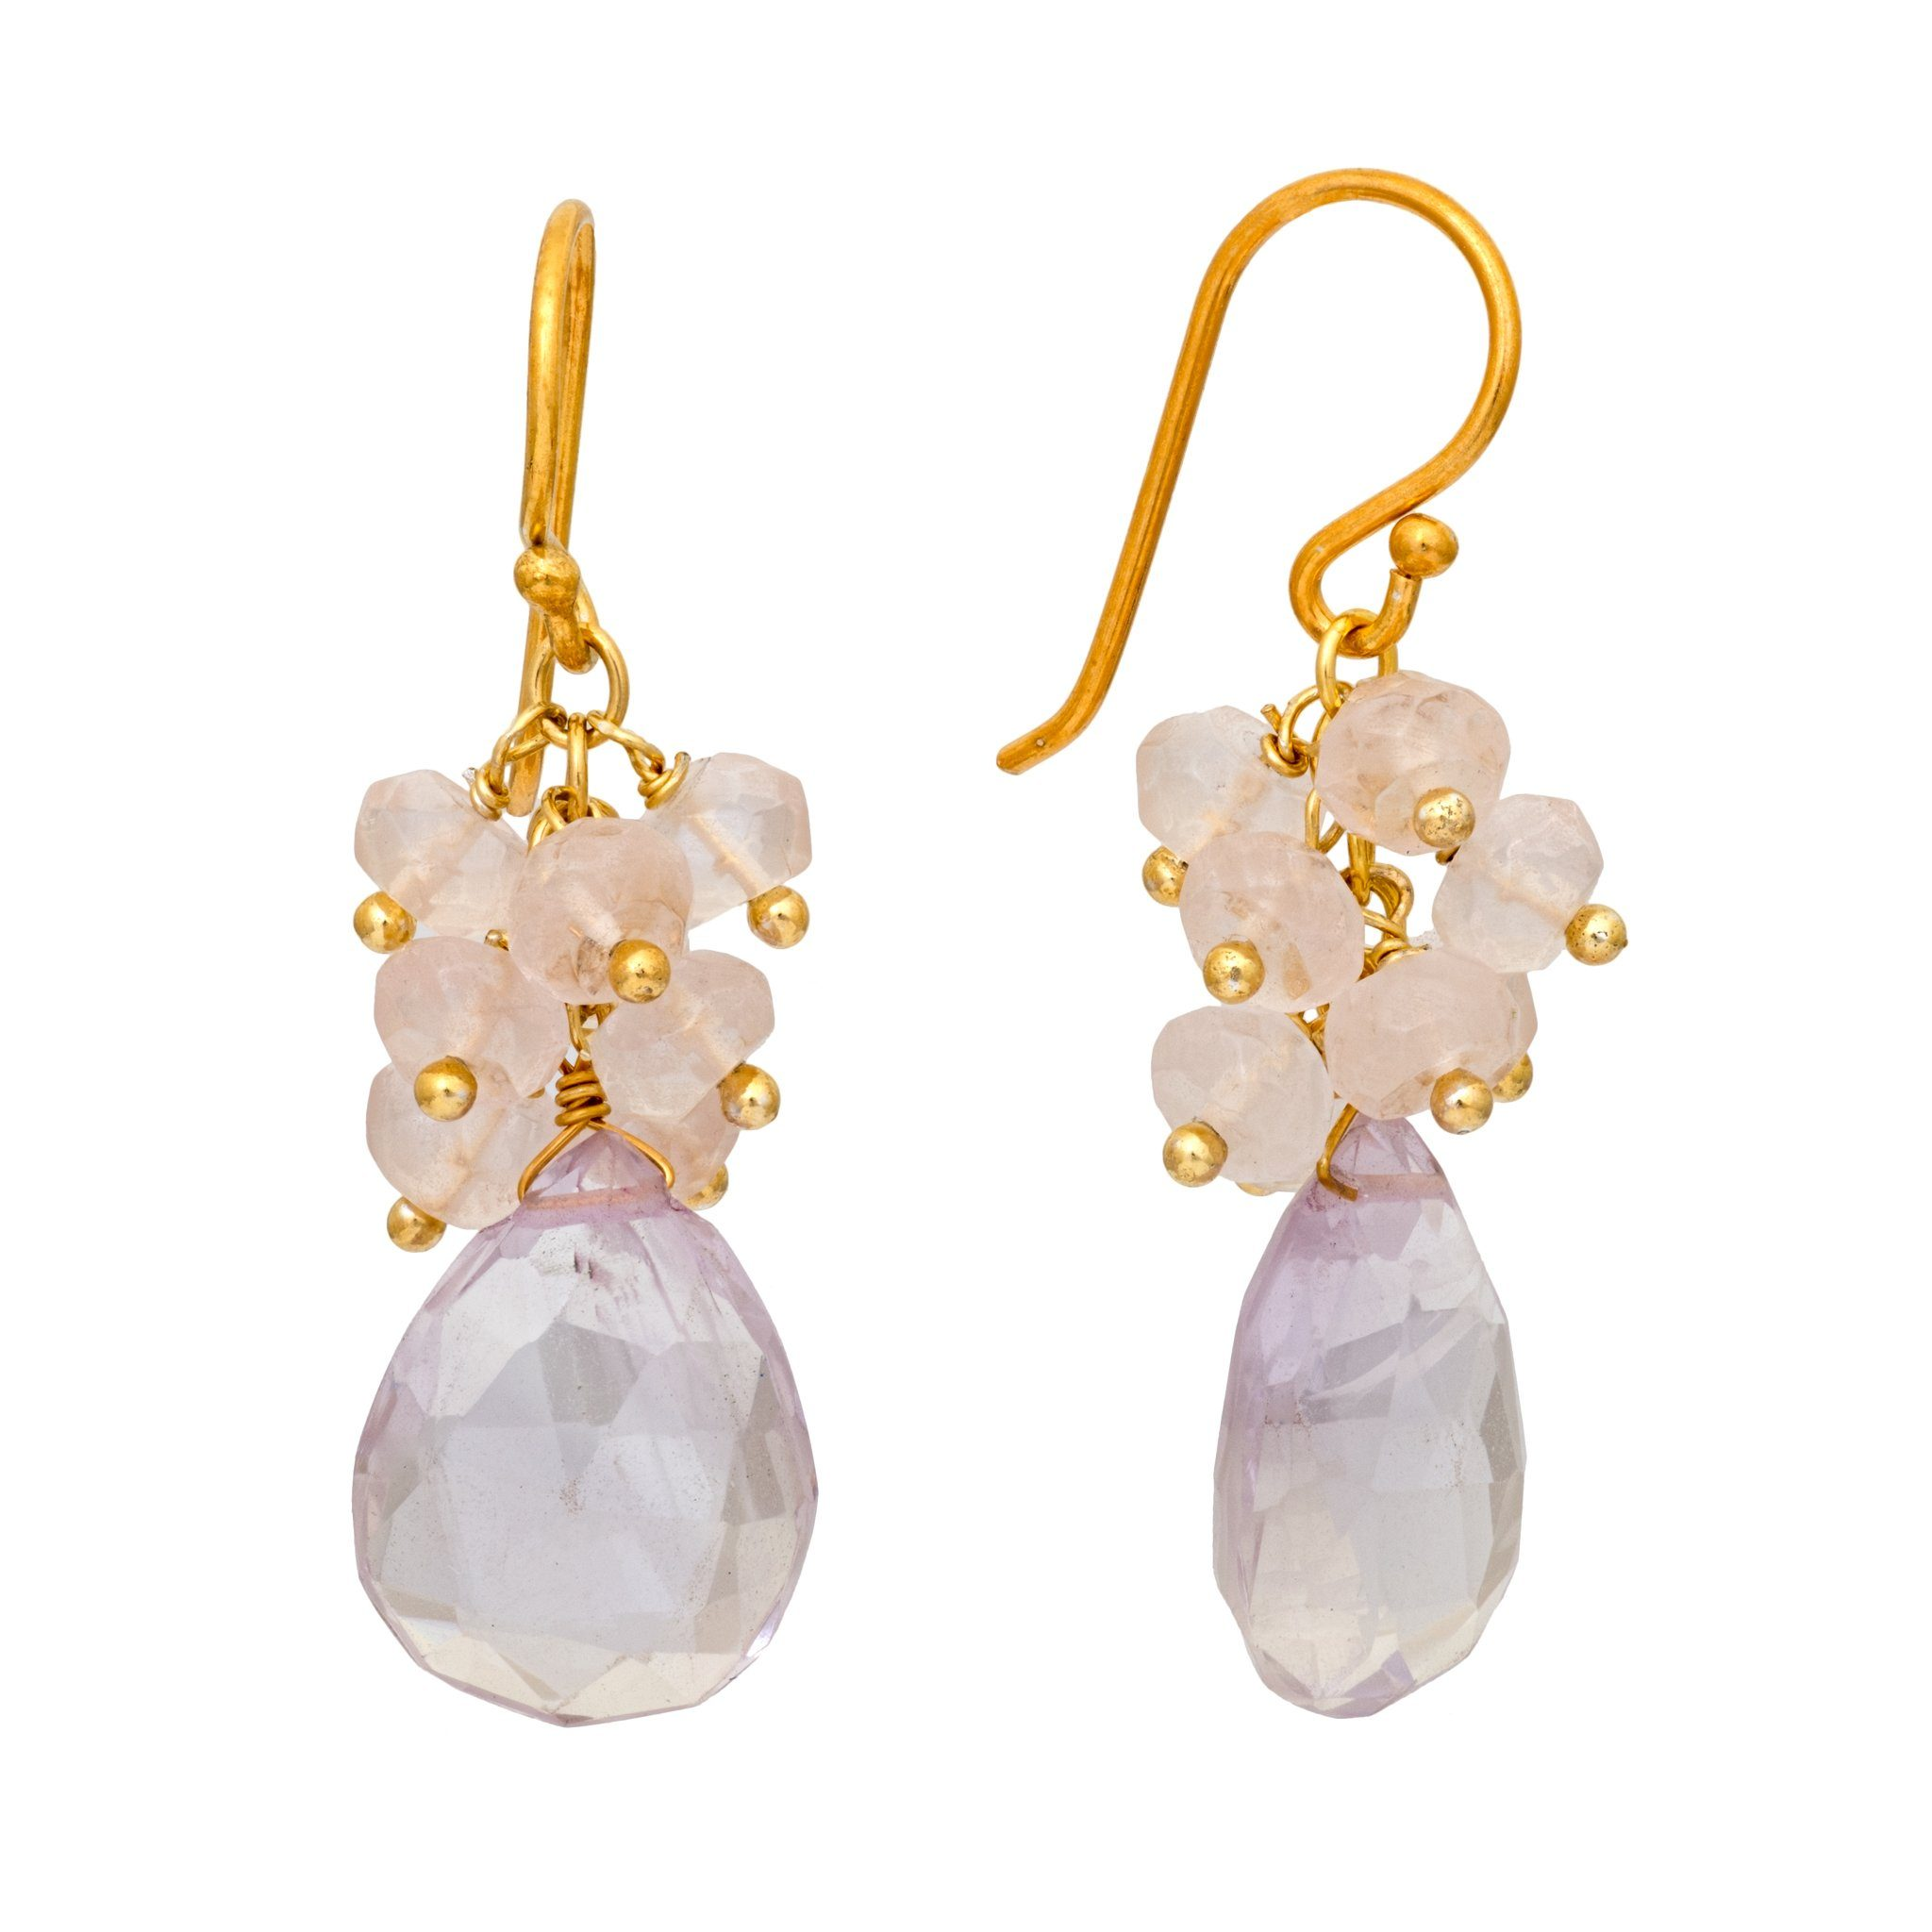 GRAPA rose quartz cluster earrings - MadamSiam